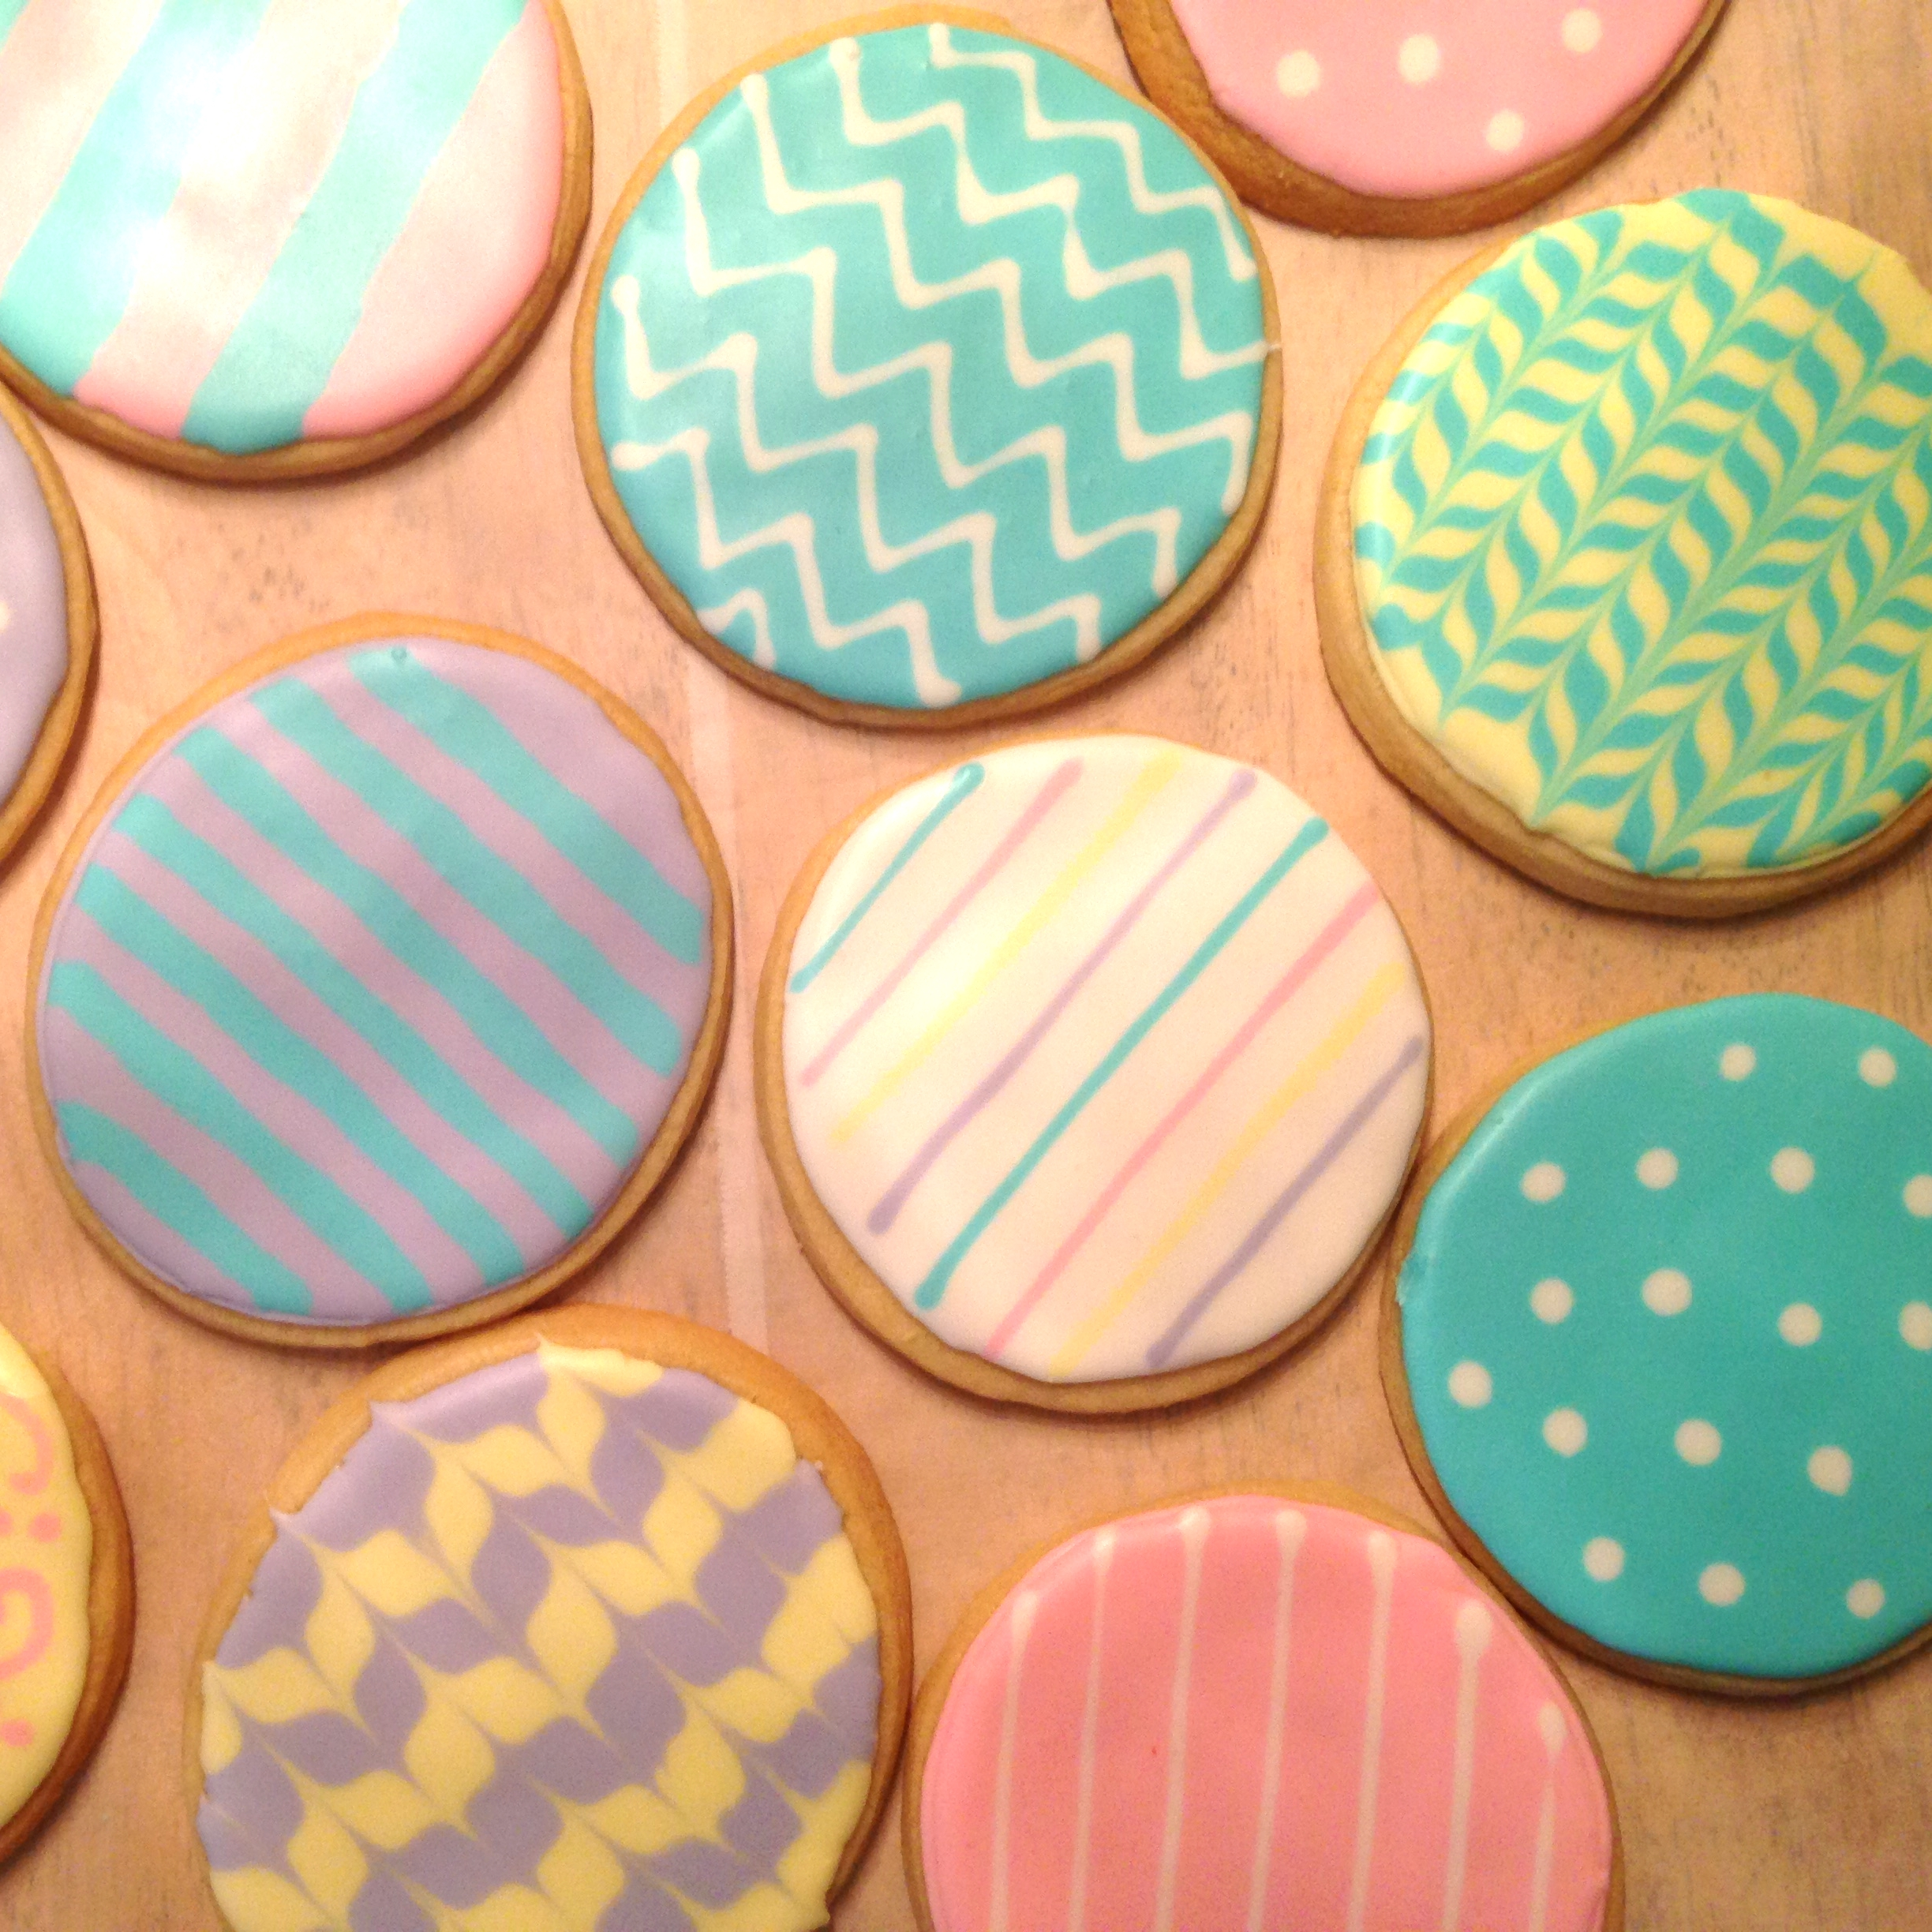 Decorated Cookies 1.JPG